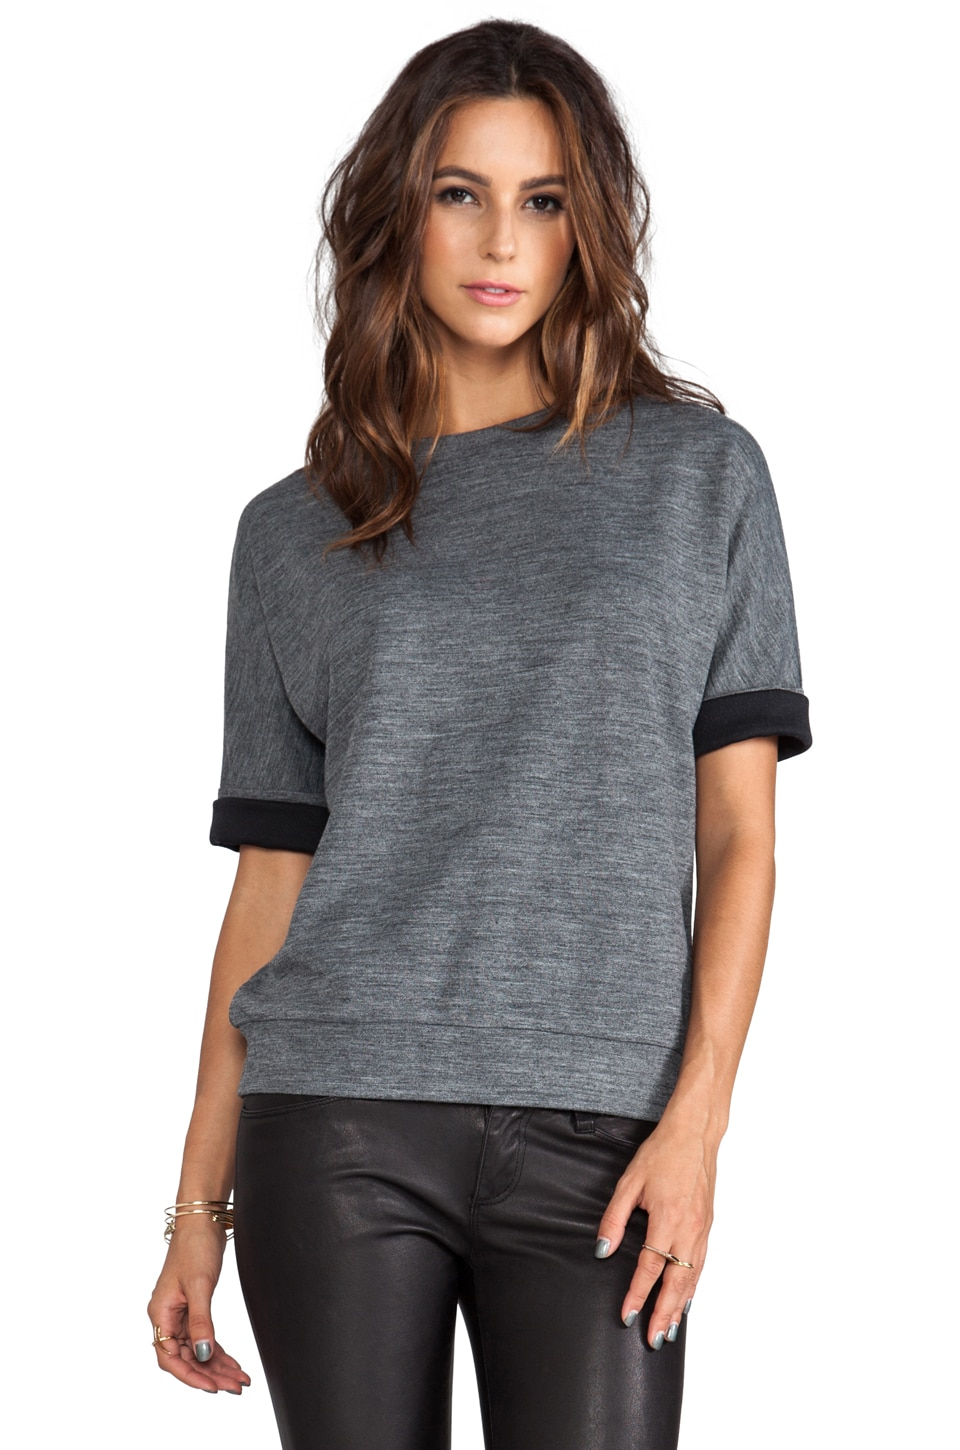 DEREK LAM 10 CROSBY Oversized Sweatshirt in Grey